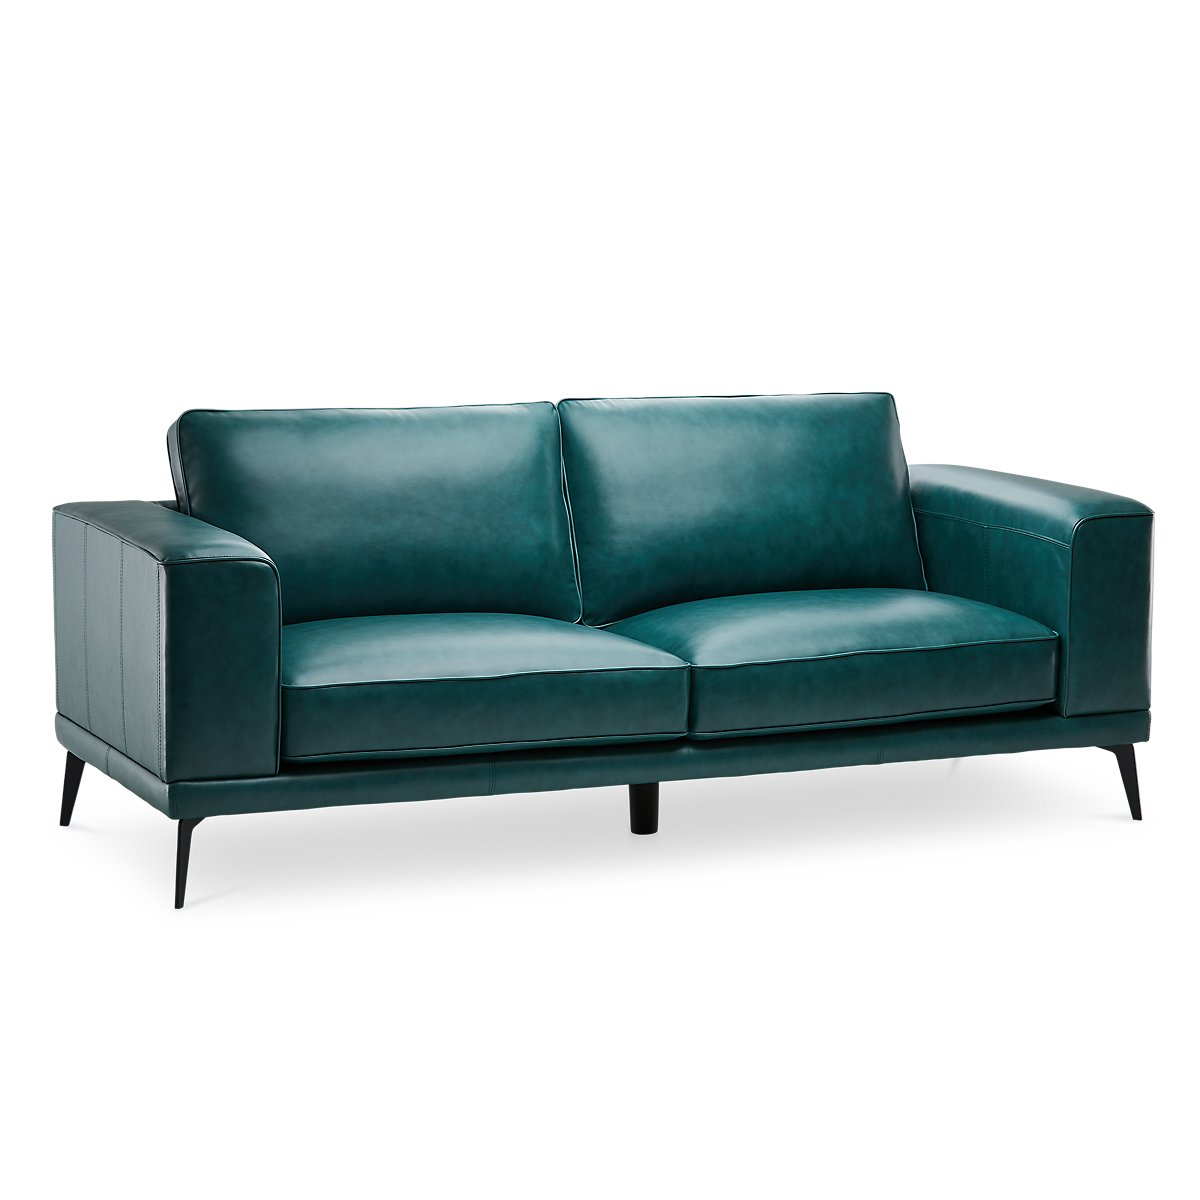 Naples Turquoise Leather Sofa With Black Legs